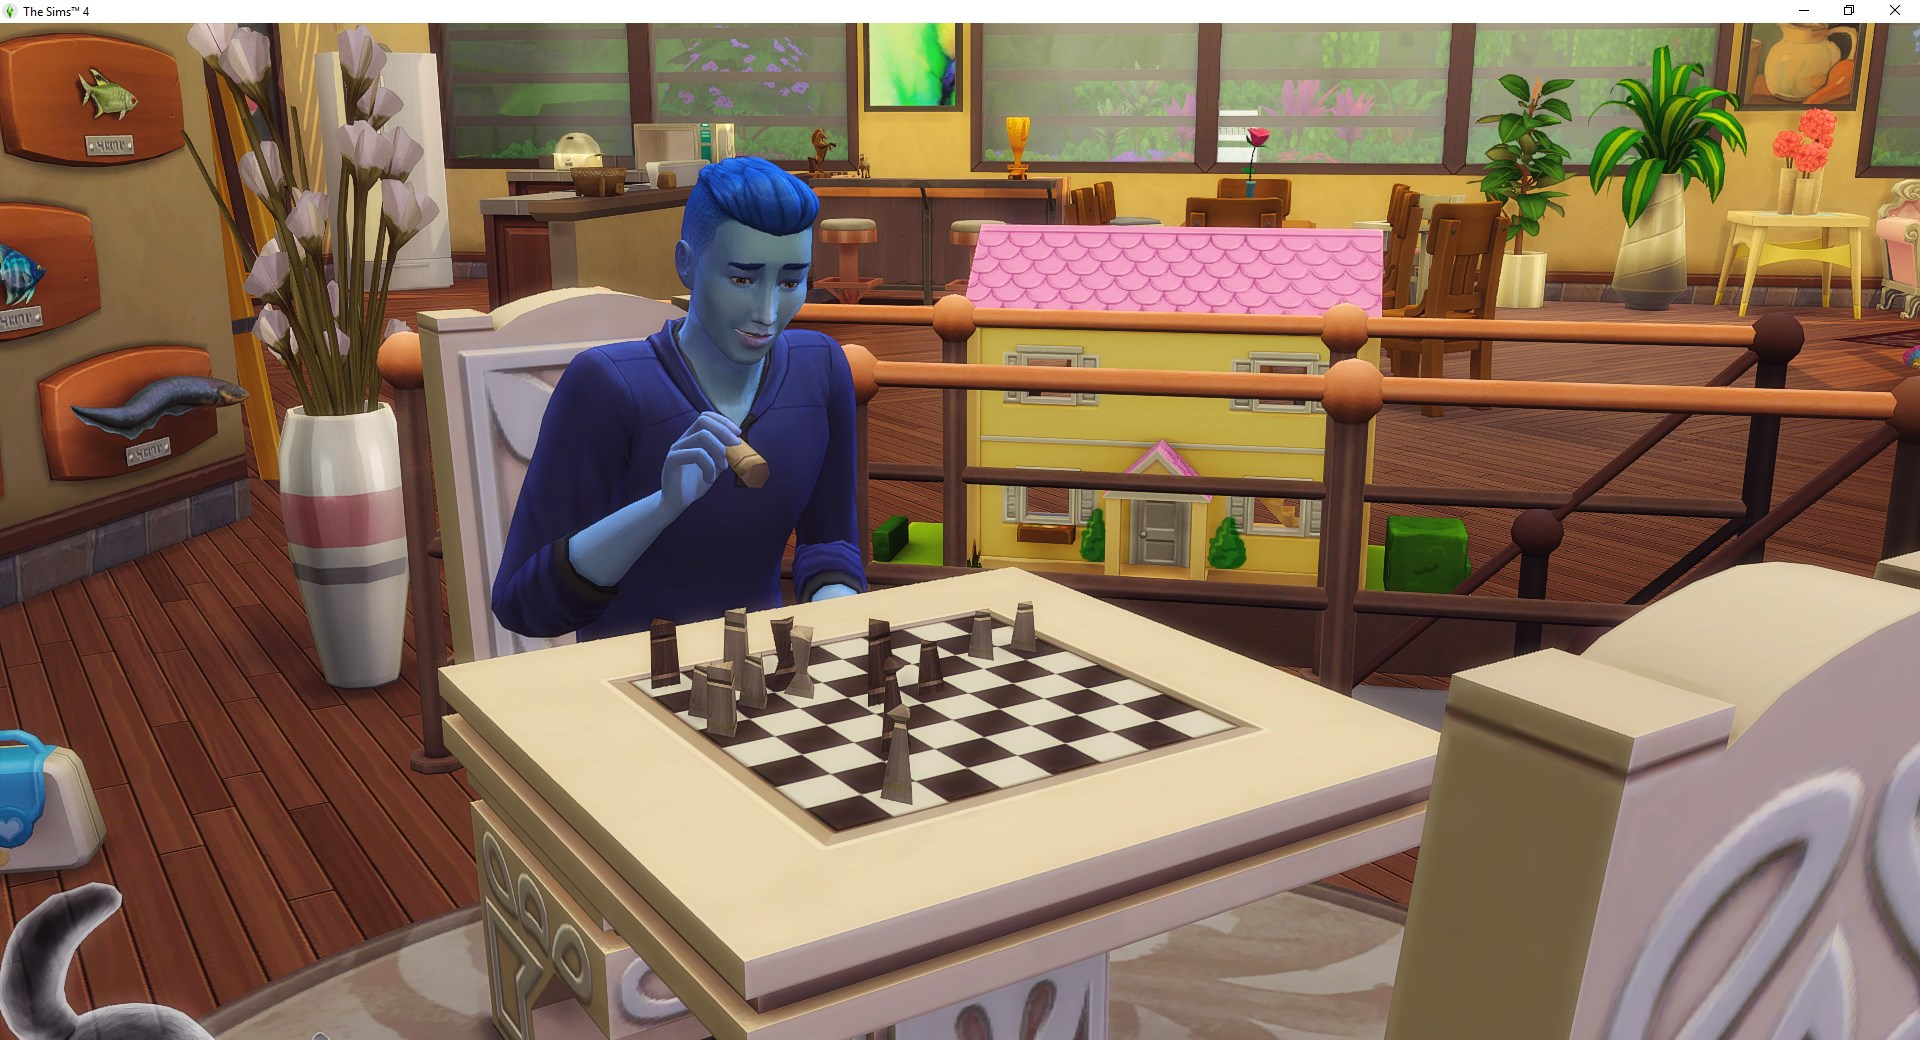 2019-09-08 09_23_50-The Sims™ 4